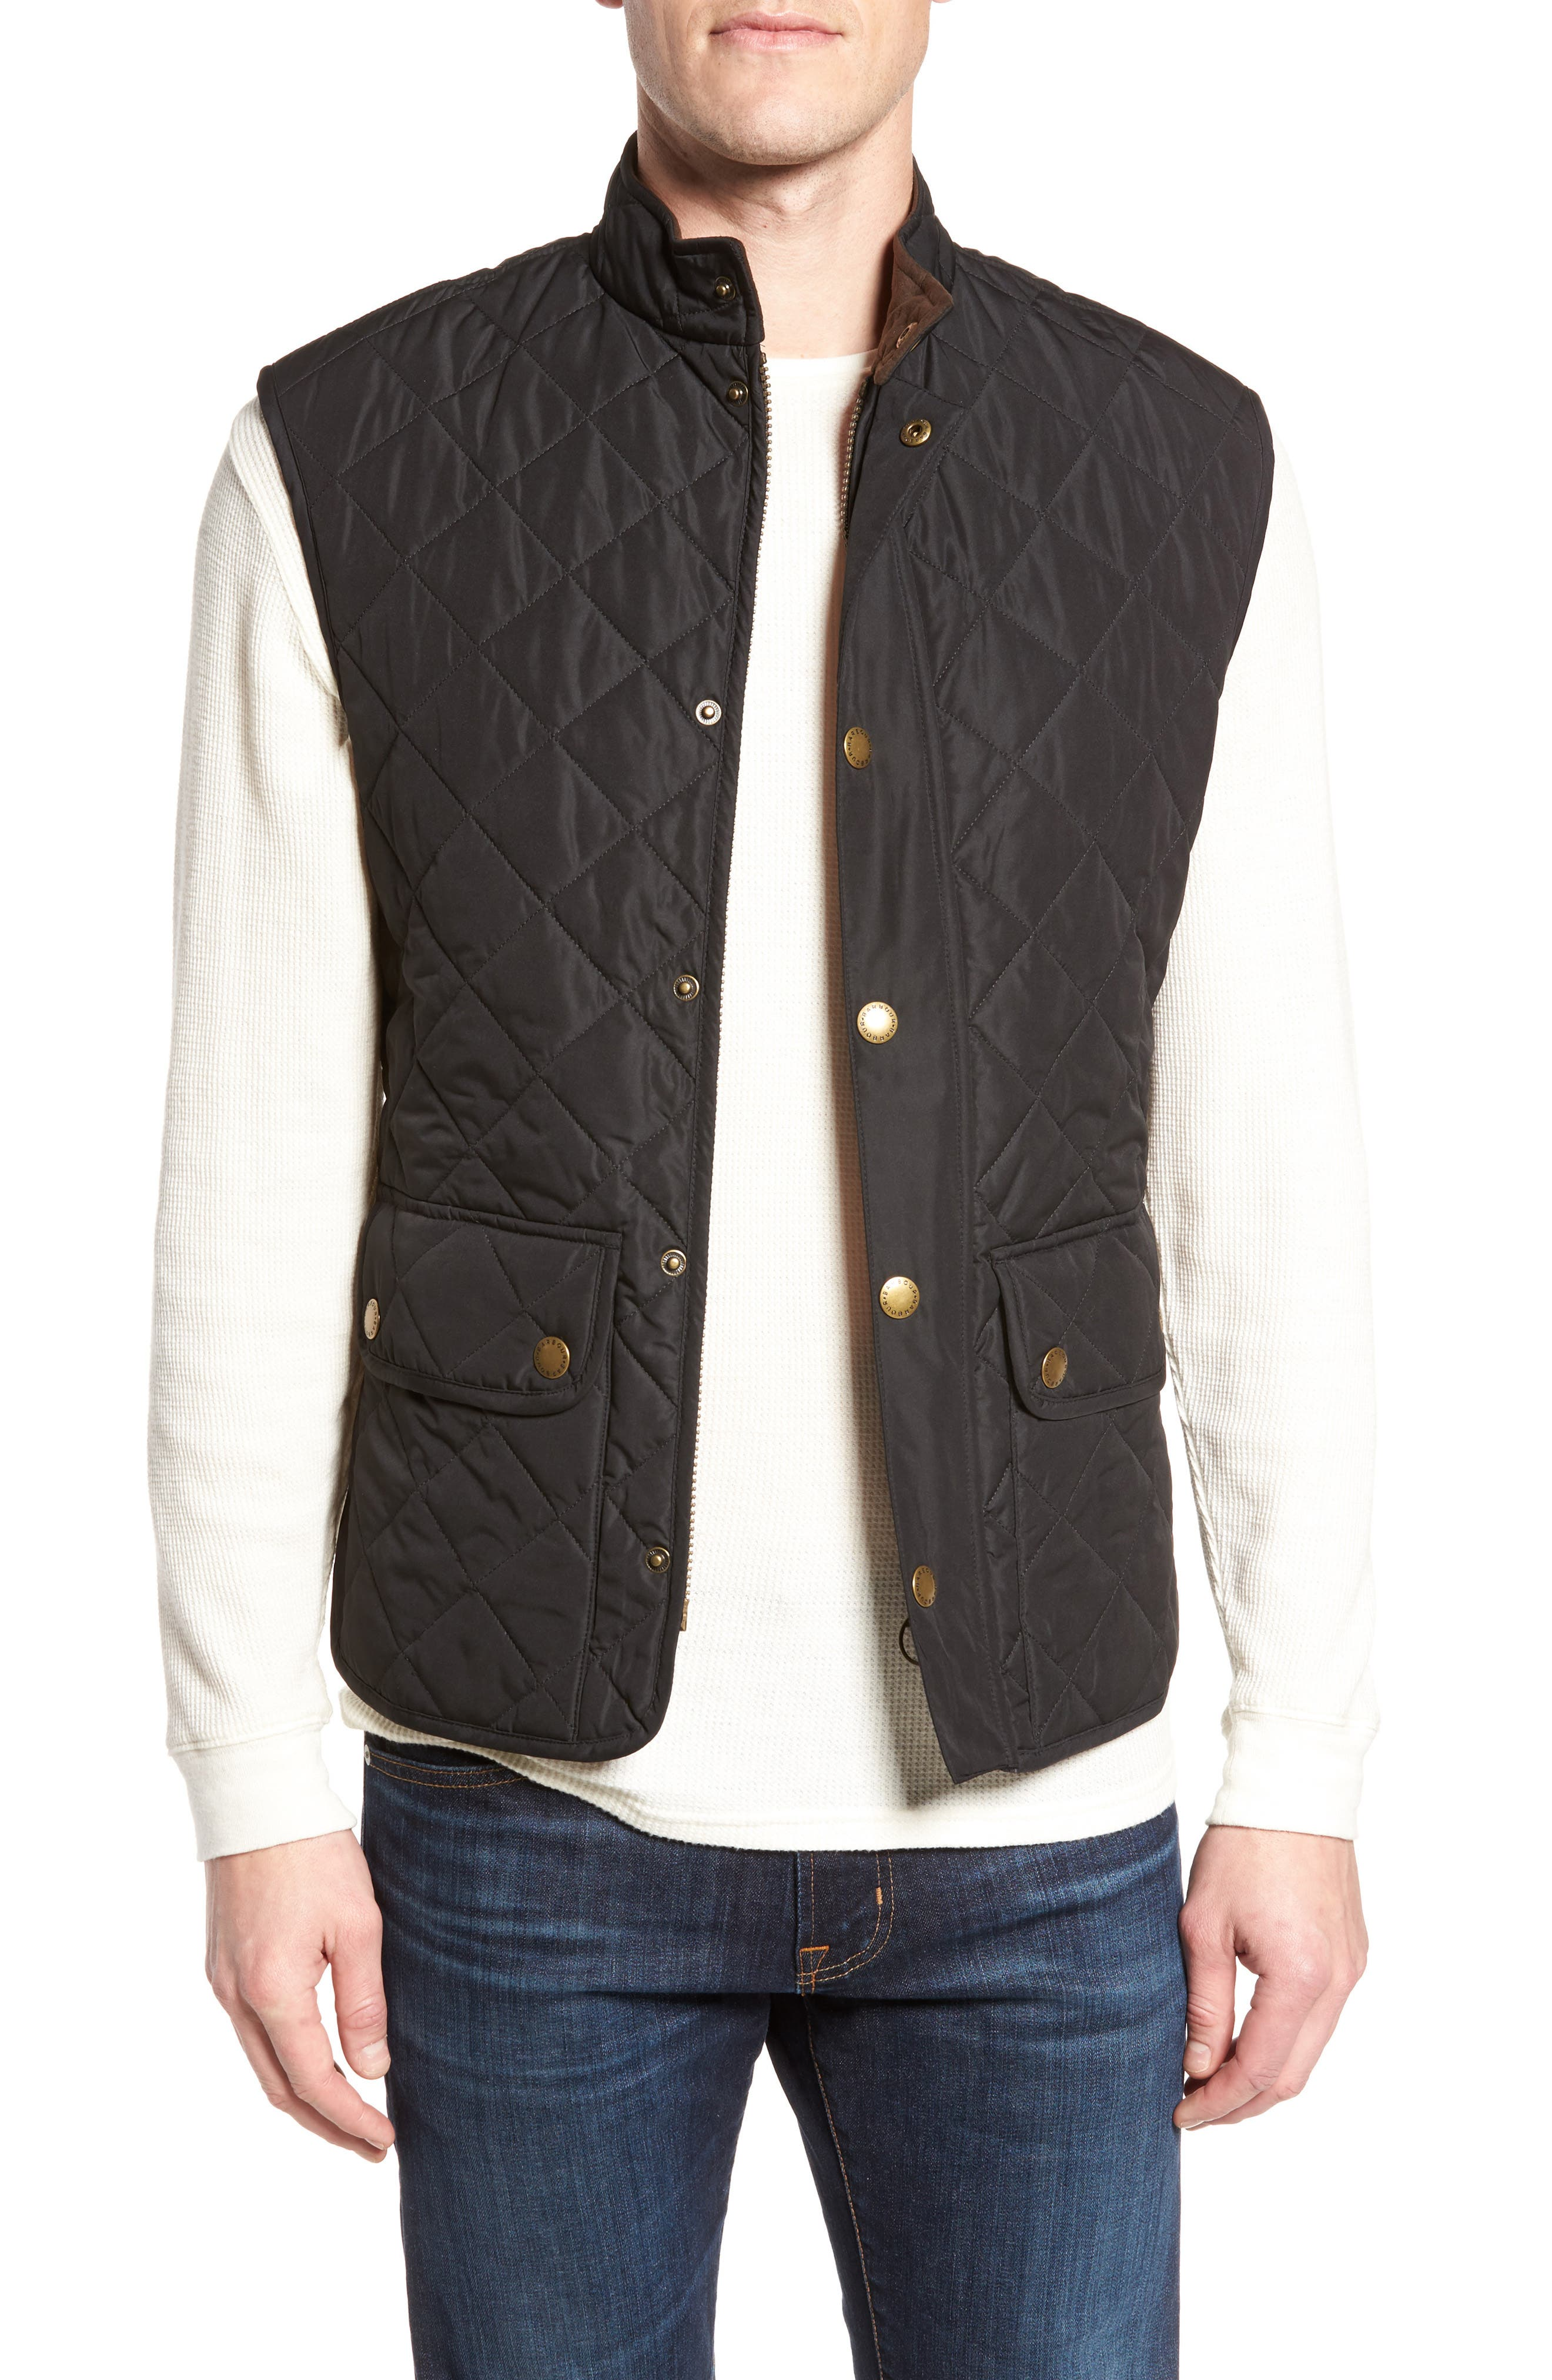 Main Image - Barbour 'Lowerdale' Trim Fit Quilted Vest